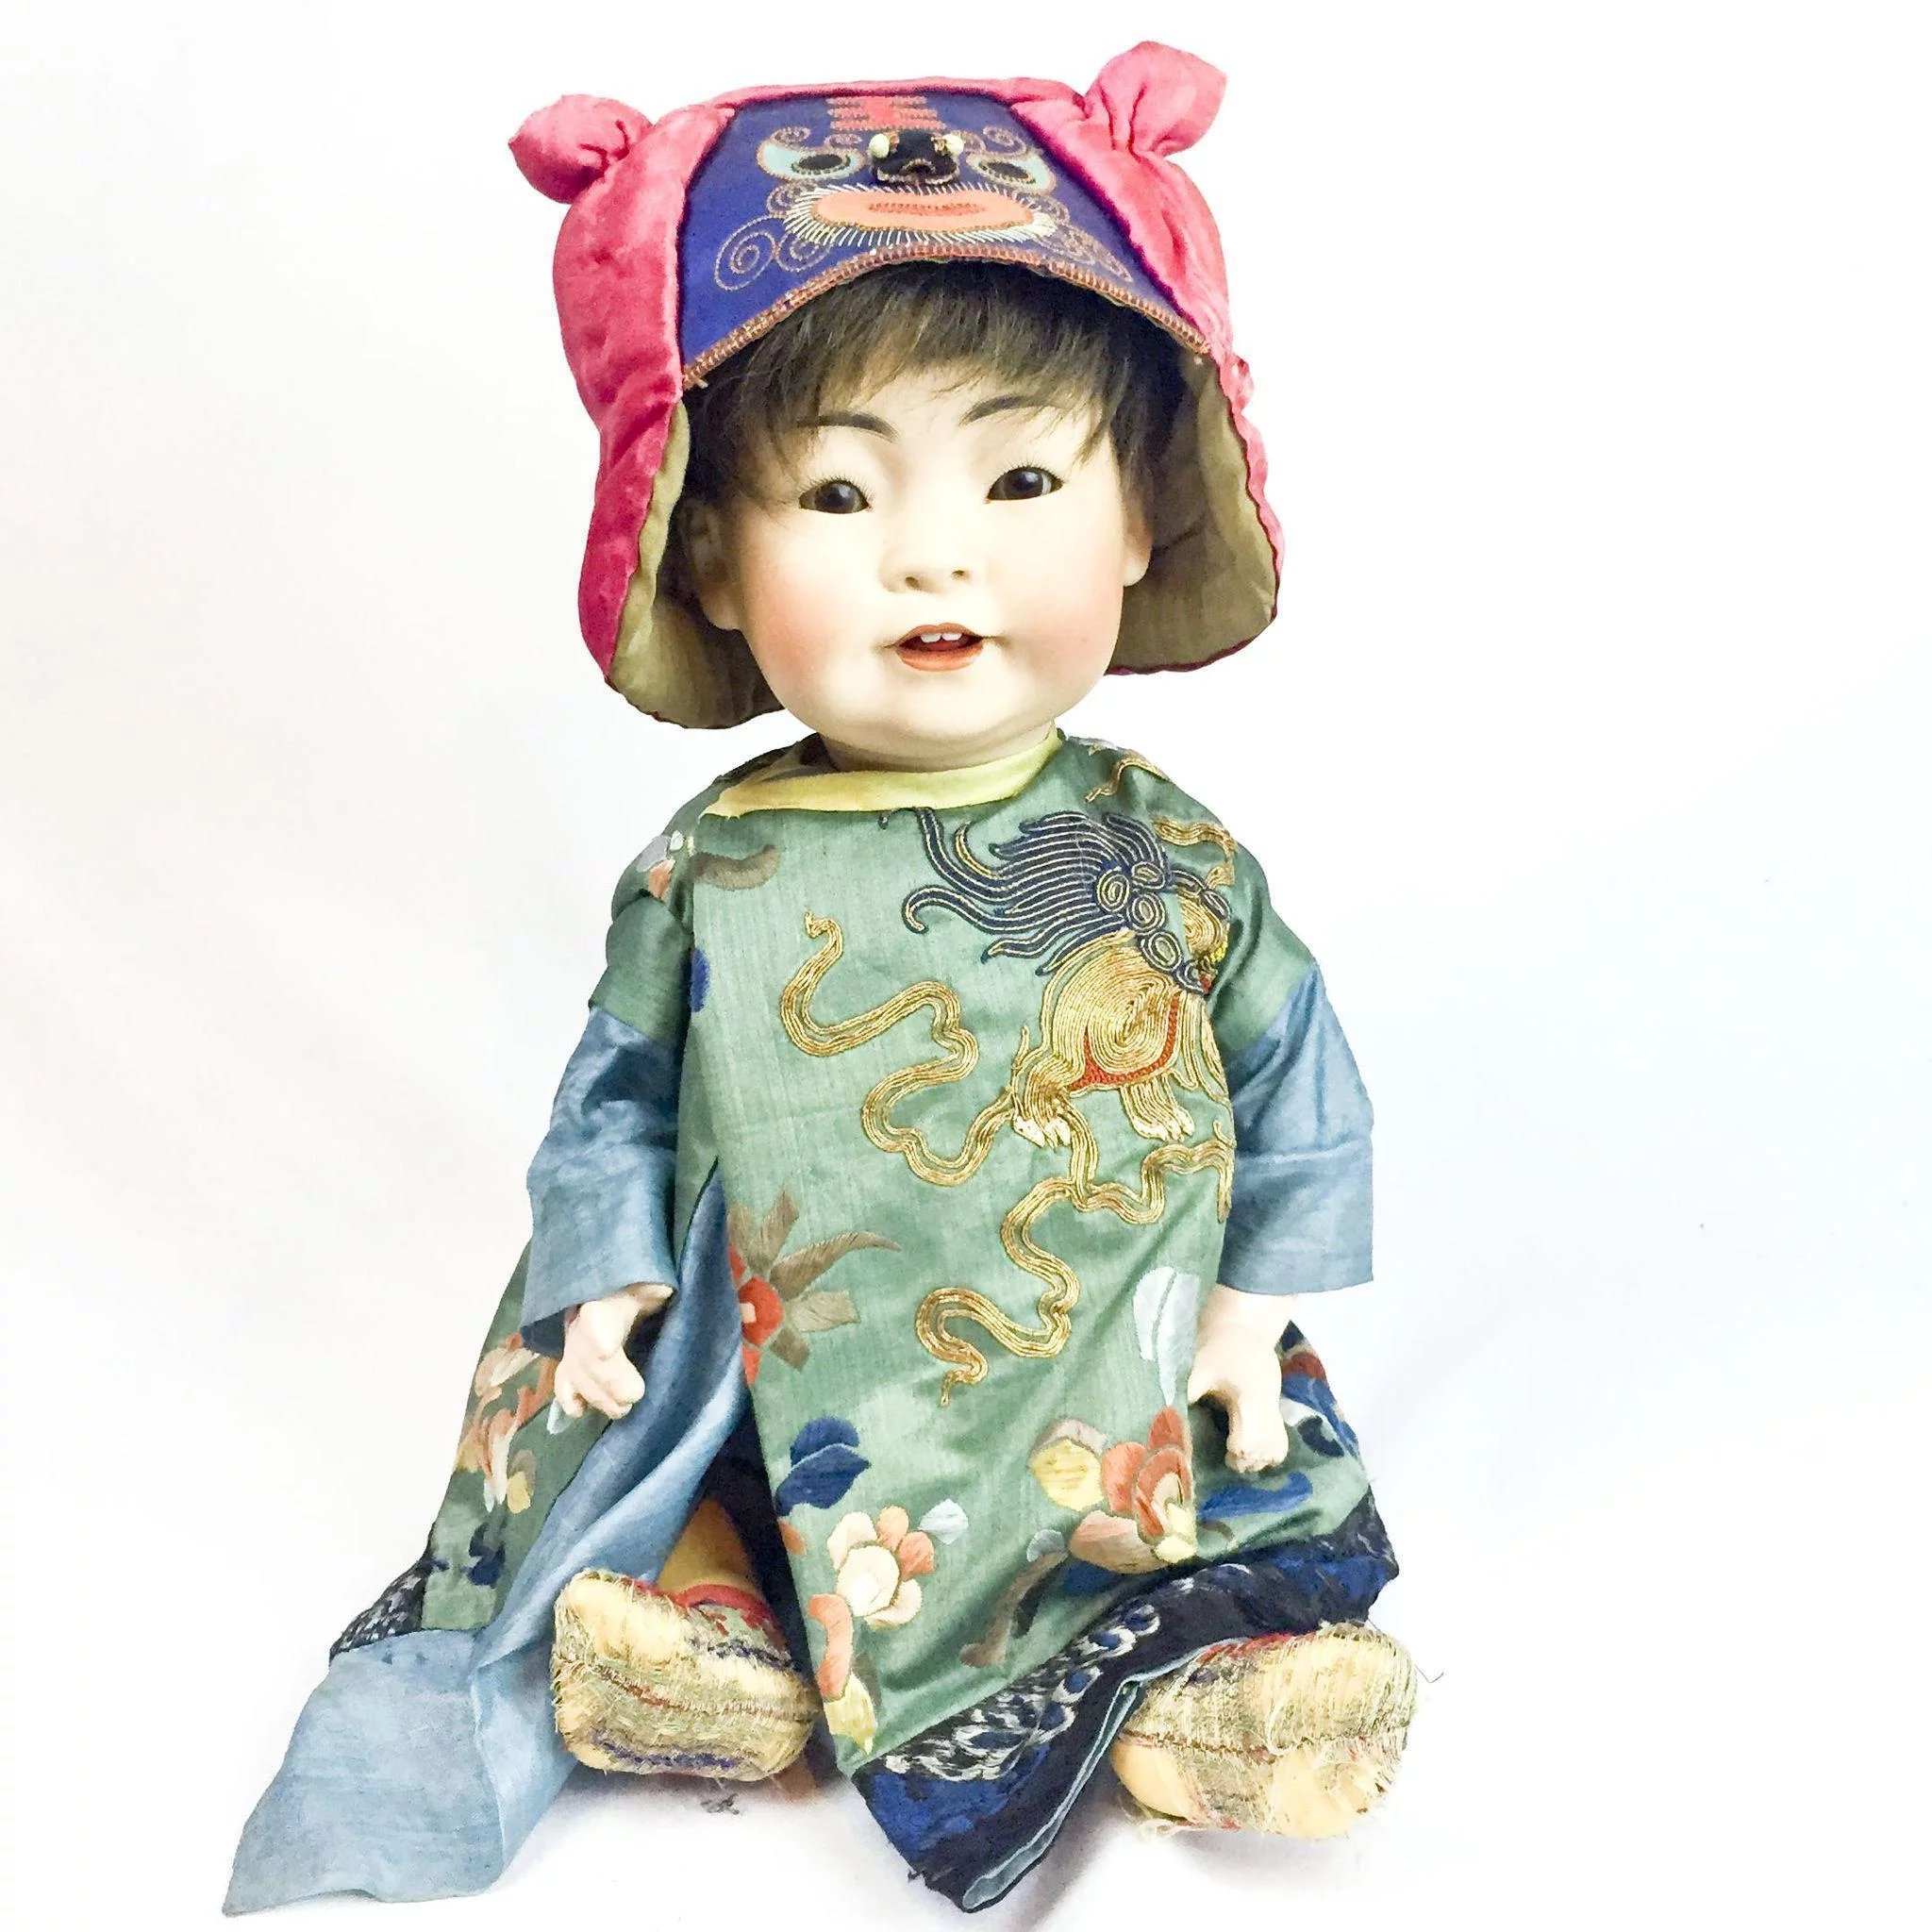 RARE 1910s German Bisque Oriental Chubby Faced Baby Doll Kestner 243